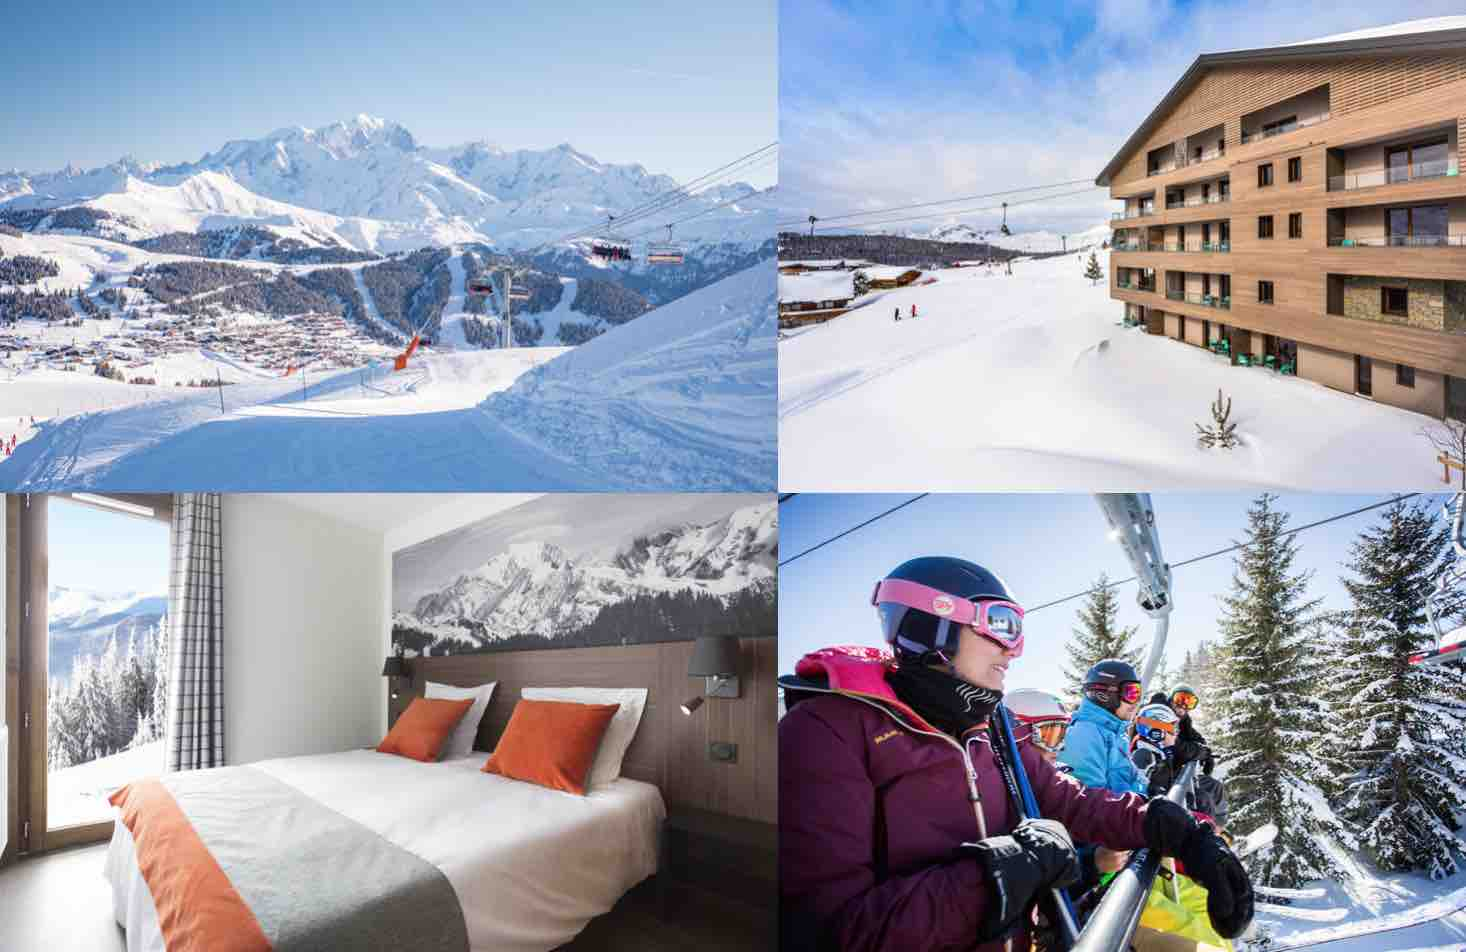 ski holiday views from the Residence Club MMV Les Chalets des Cimes